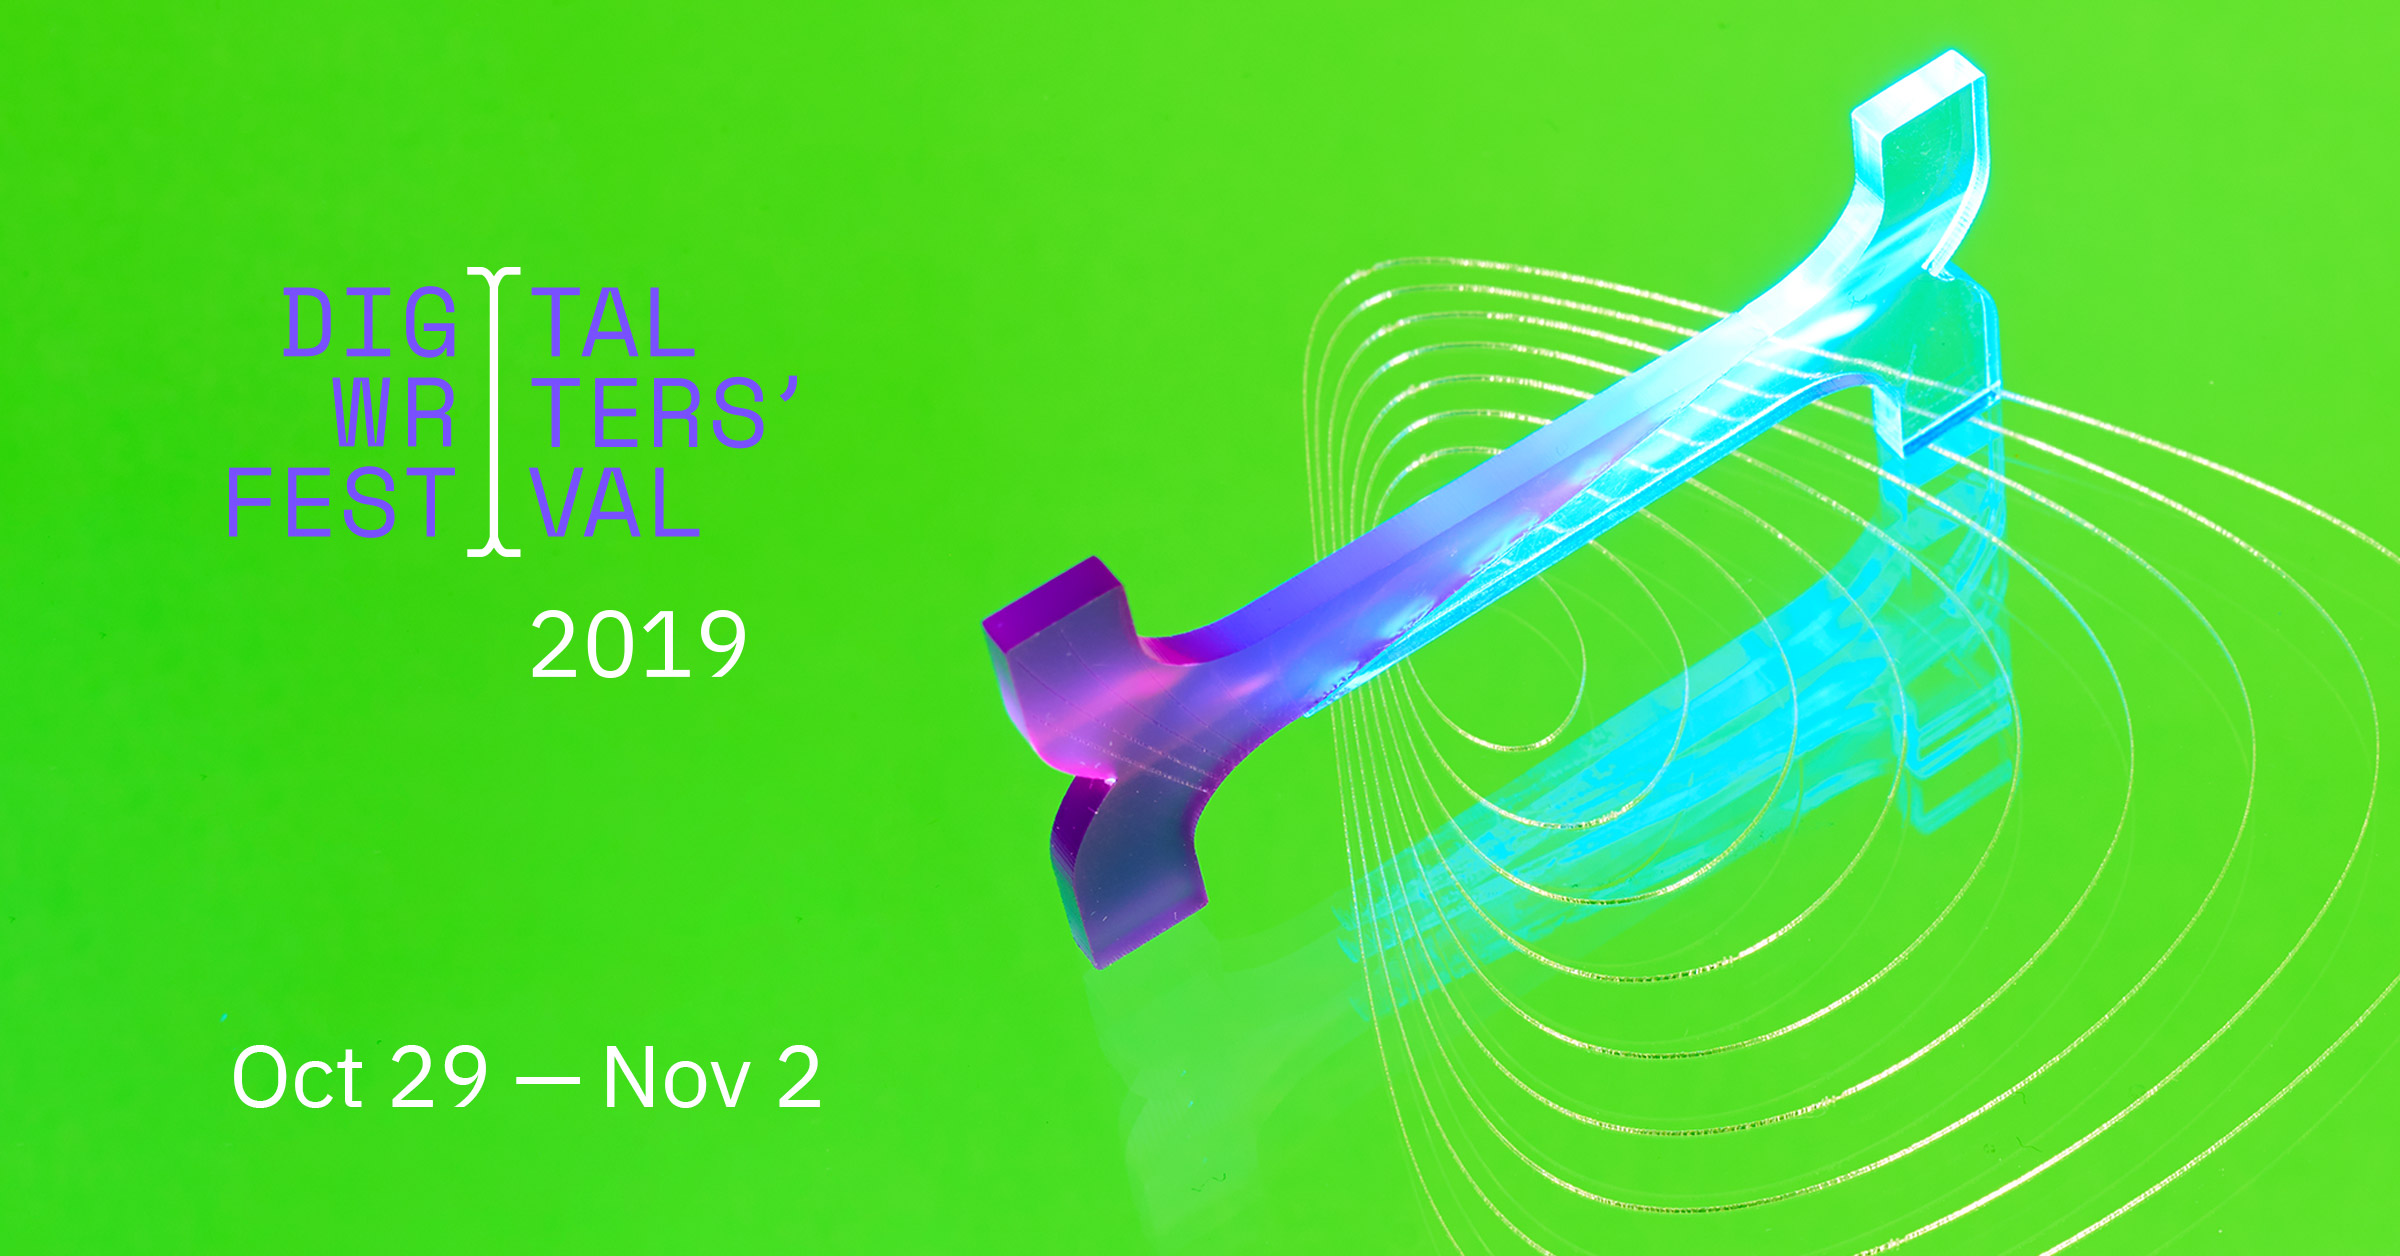 Promotional Graphic from the Digital Writers' Festival 2019